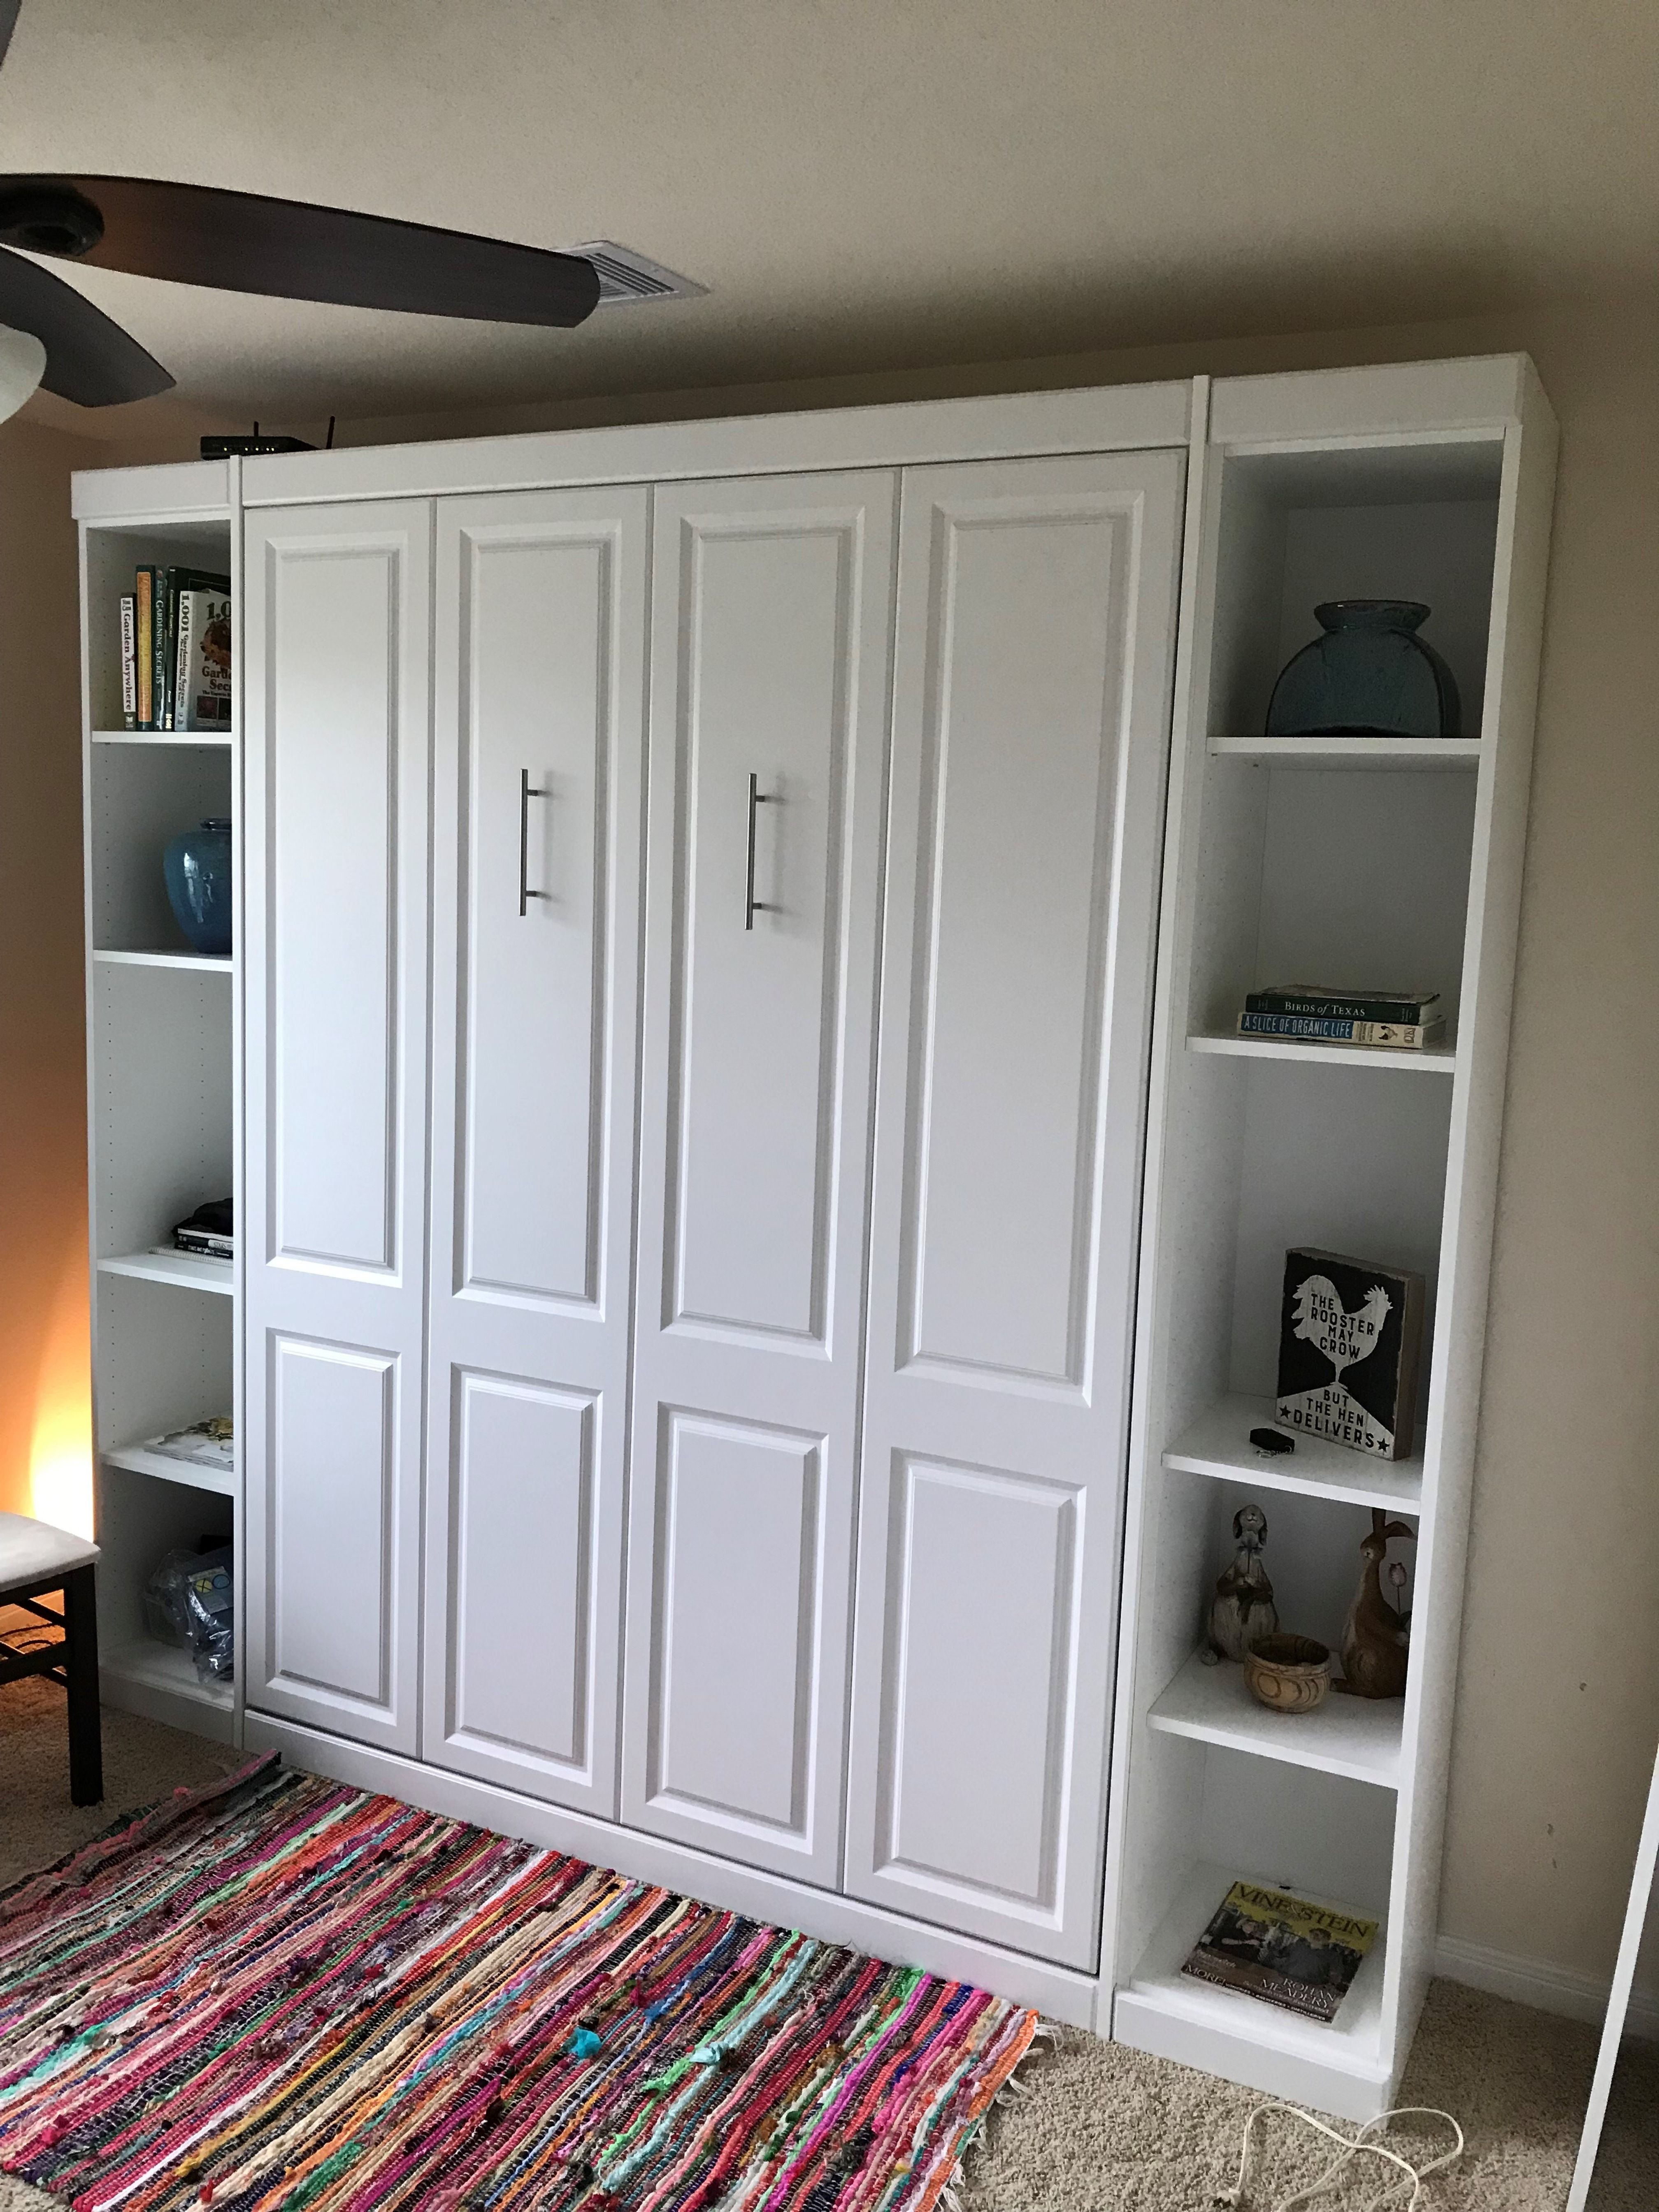 The panel bed saves even more space without the bifold